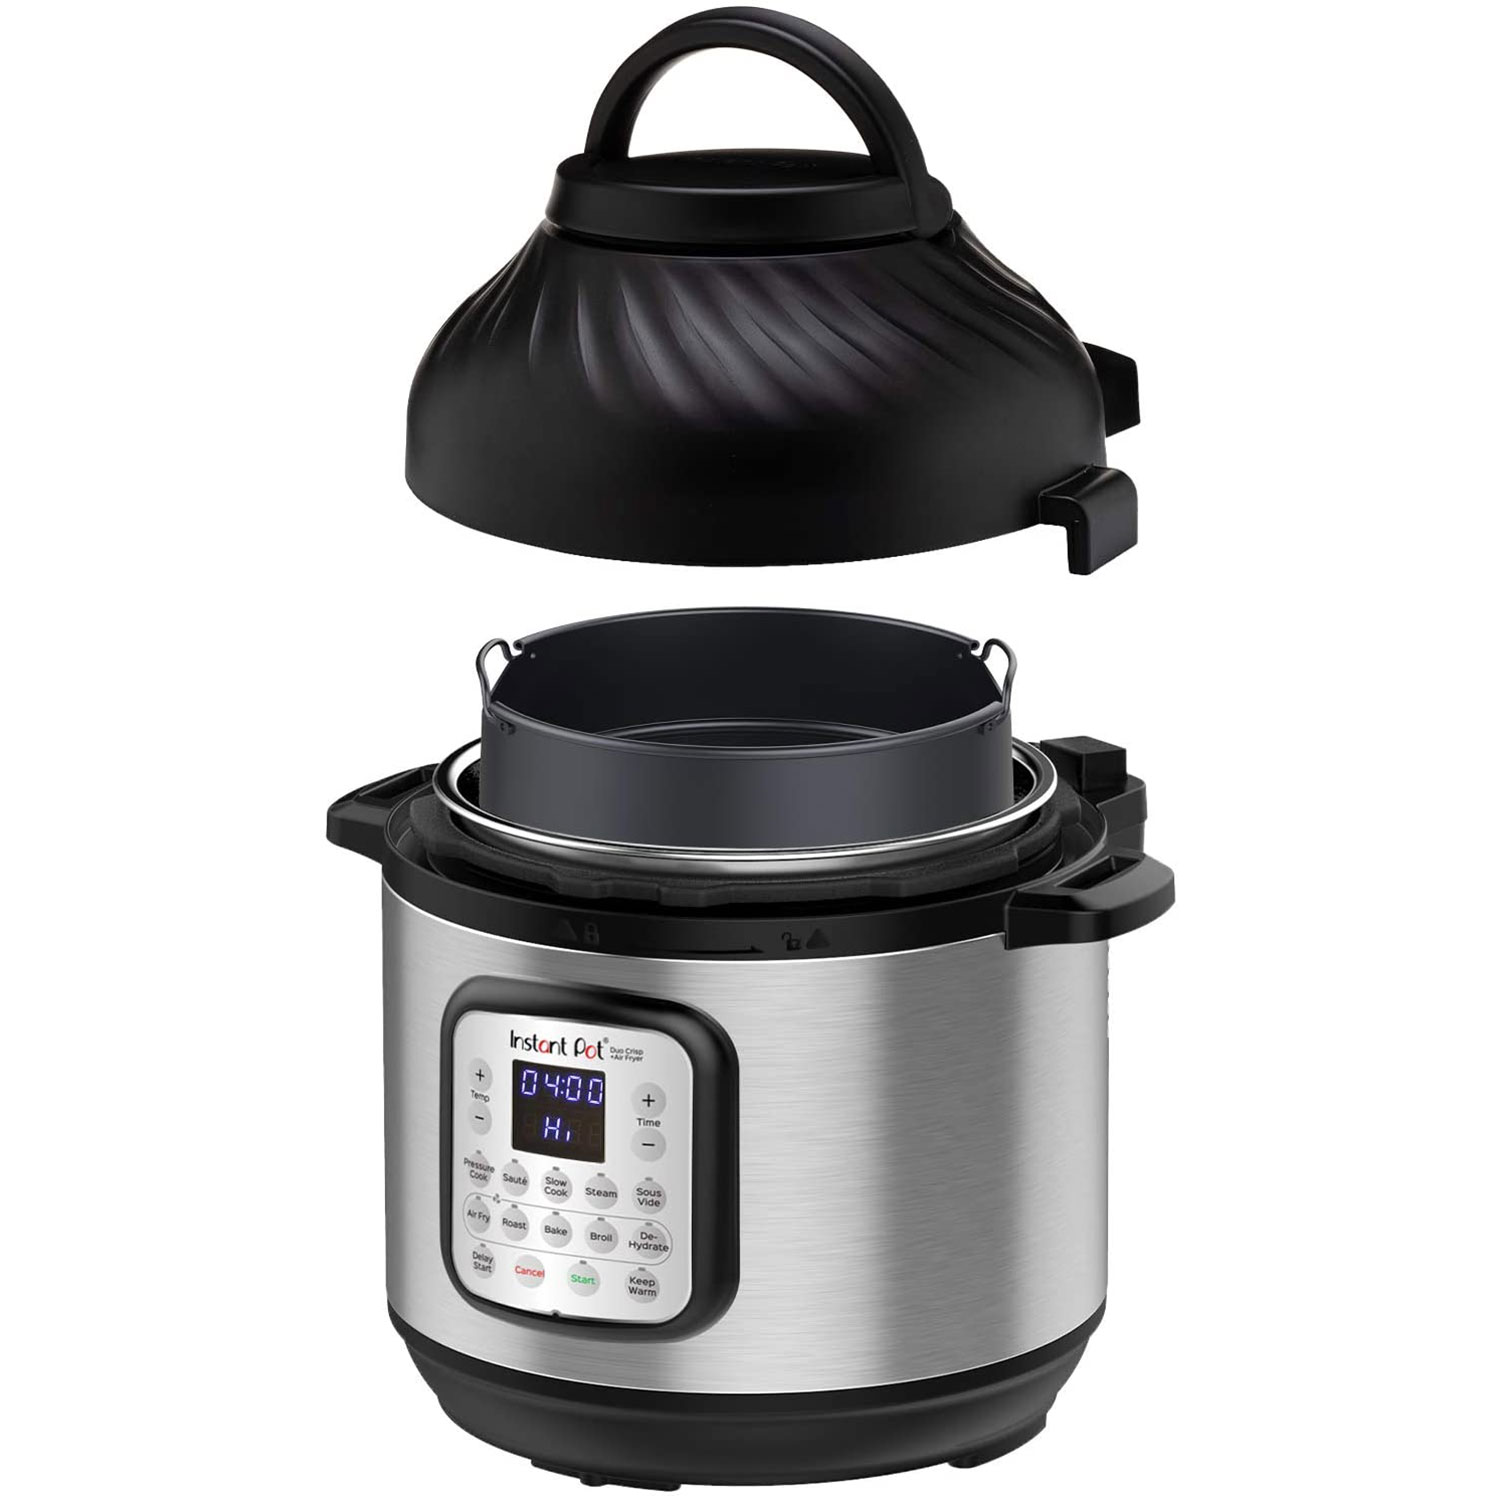 instant pot duo crisp pressure cooker 8 quart